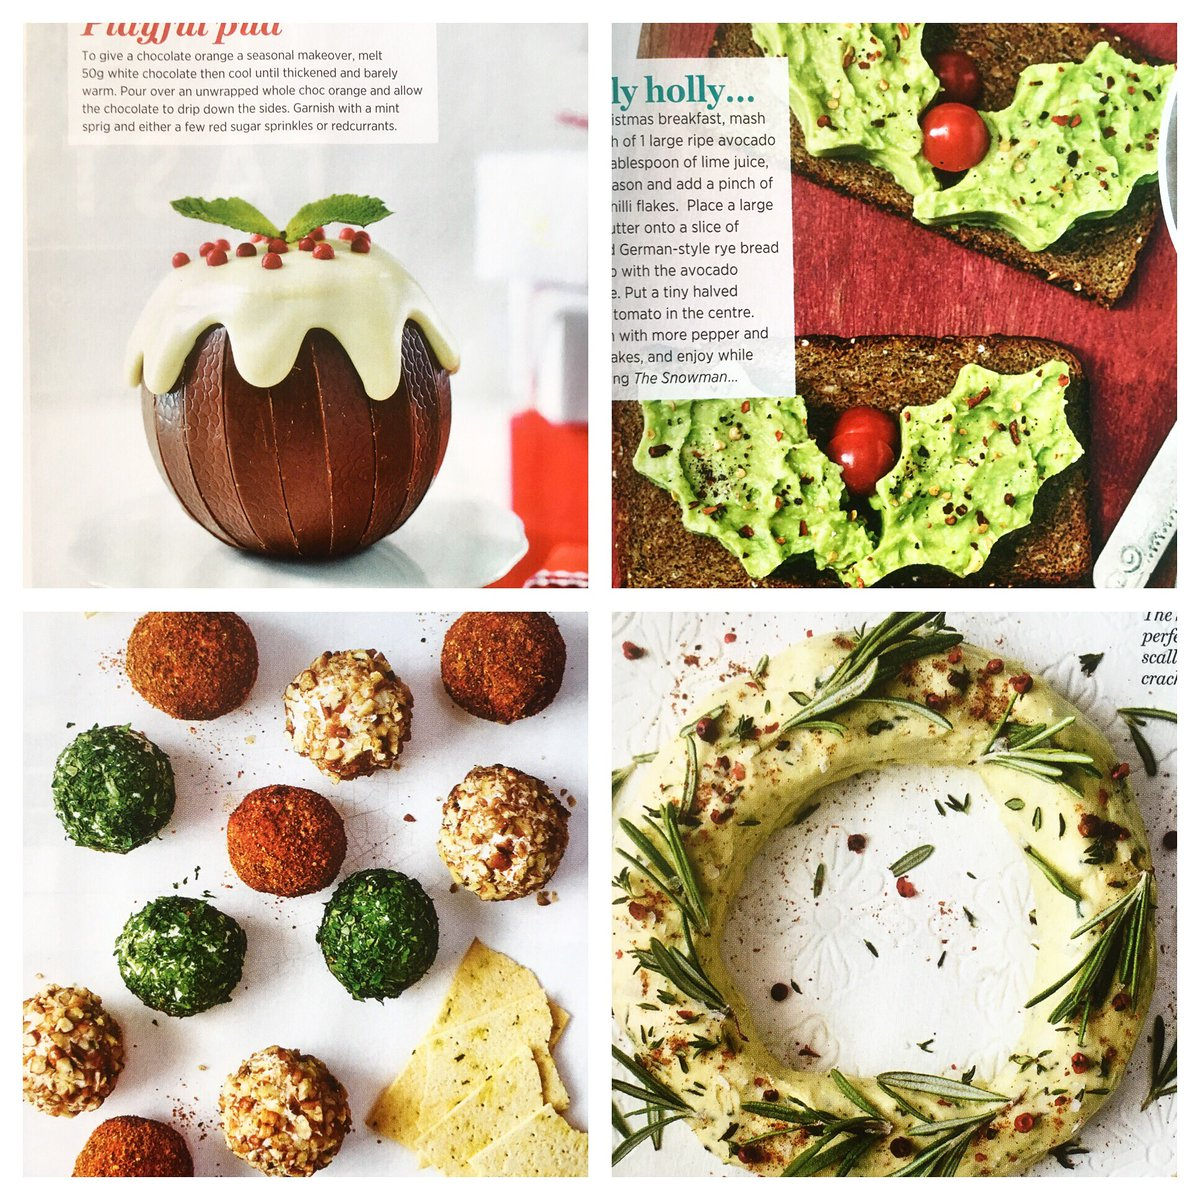 ryan riley on twitter i created these easy and fun christmas food